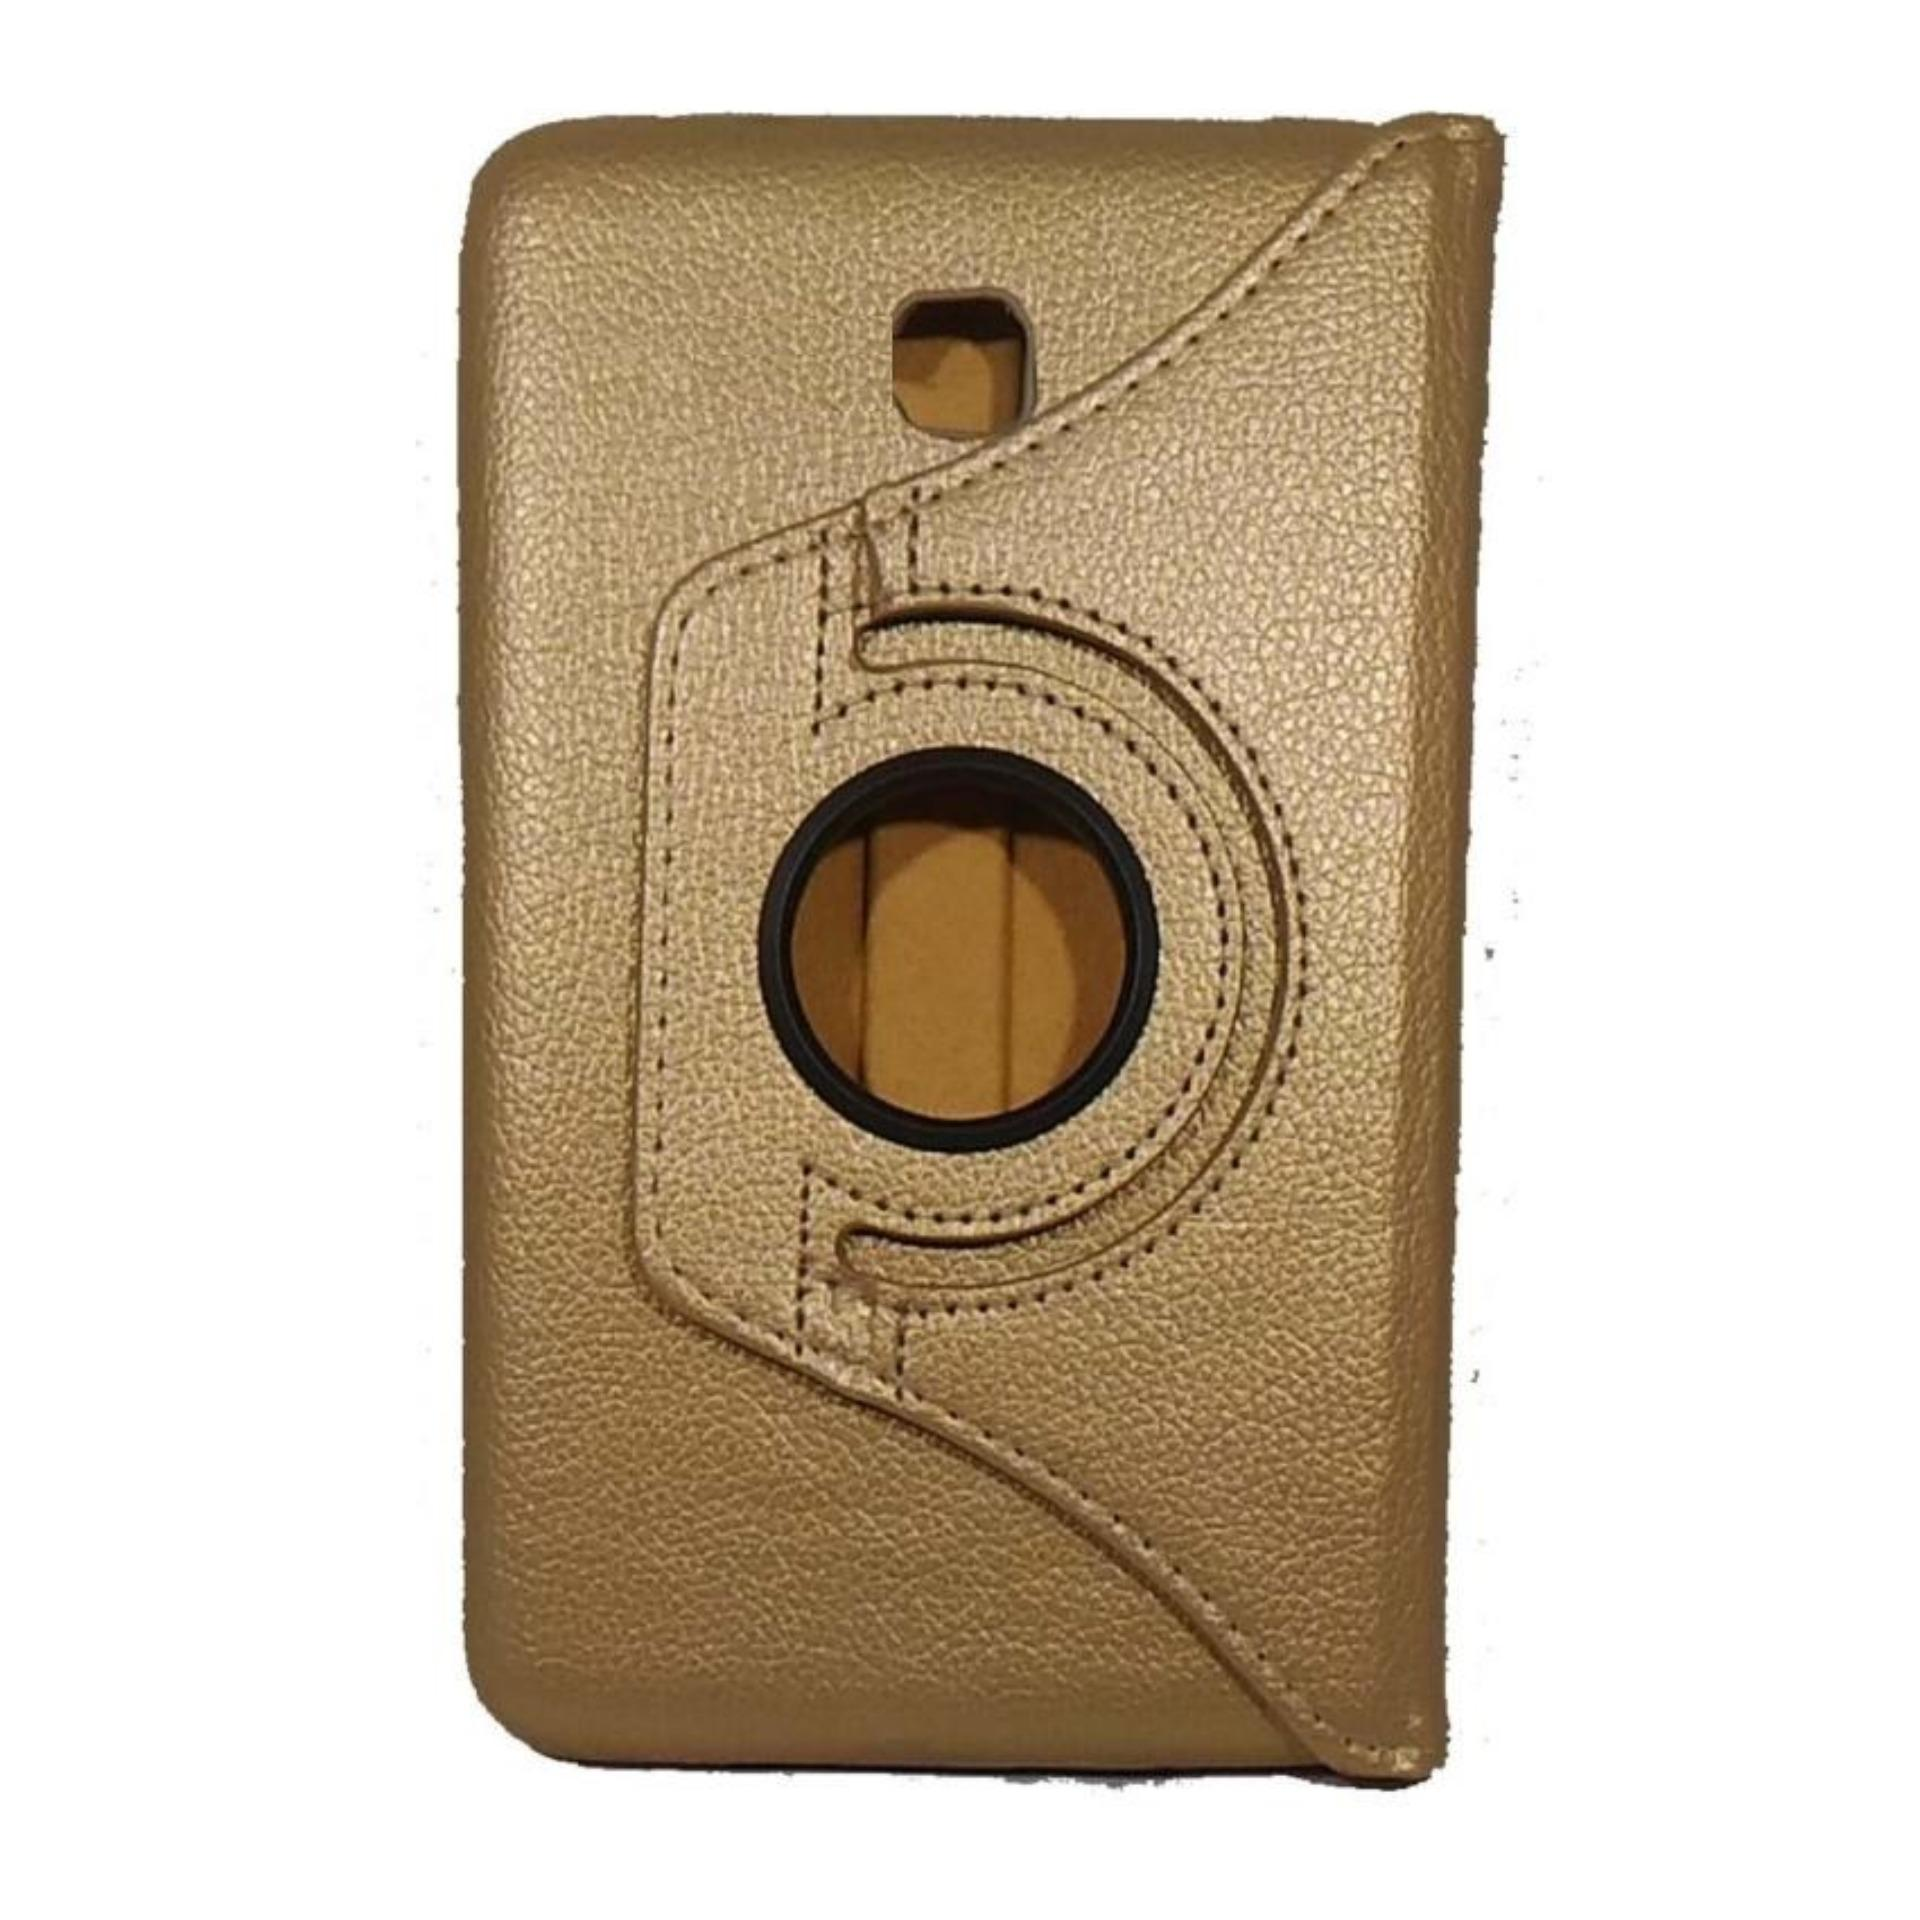 Rotate Flip Case for Samsung Galaxy Tab 3 7.0 SM-T210, T211, T215